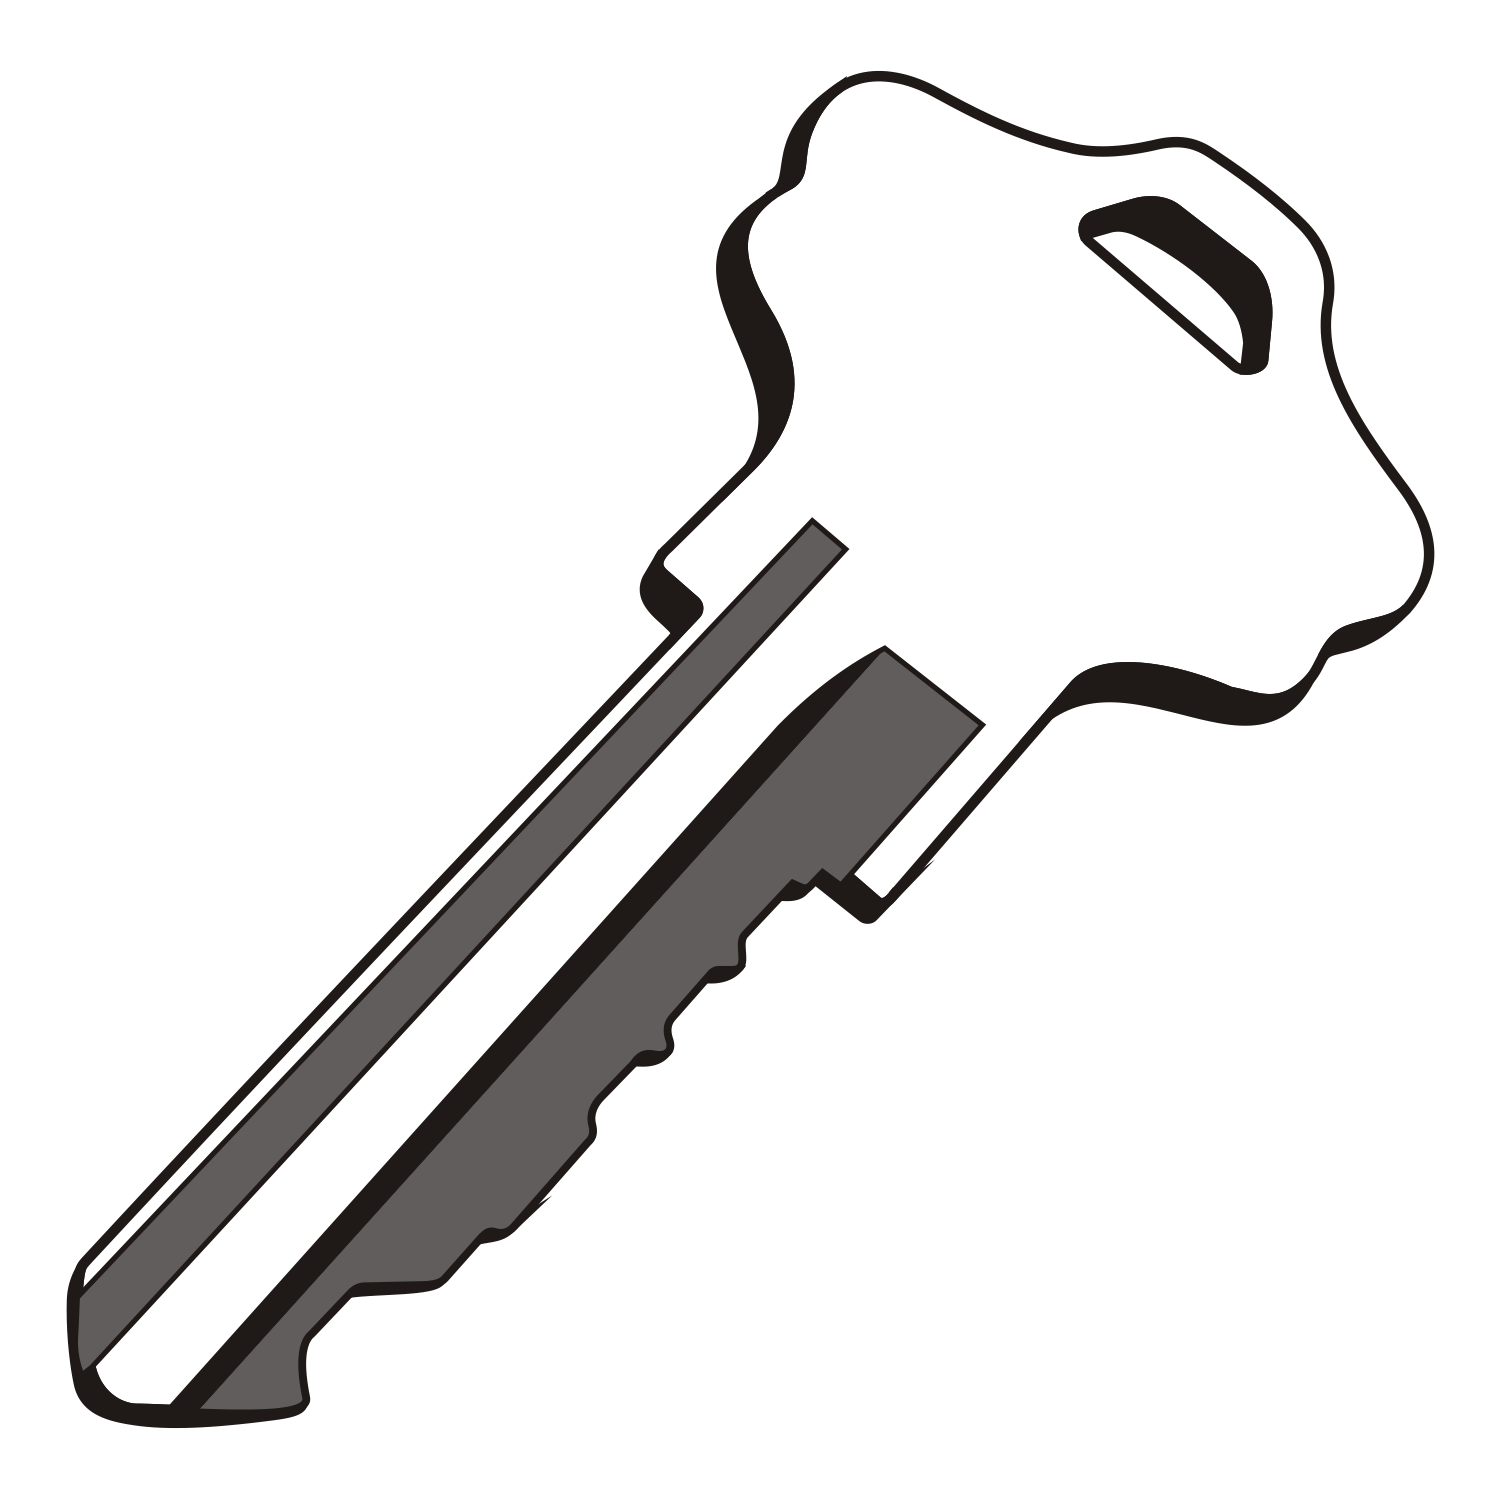 A vector black and white illustration of a key